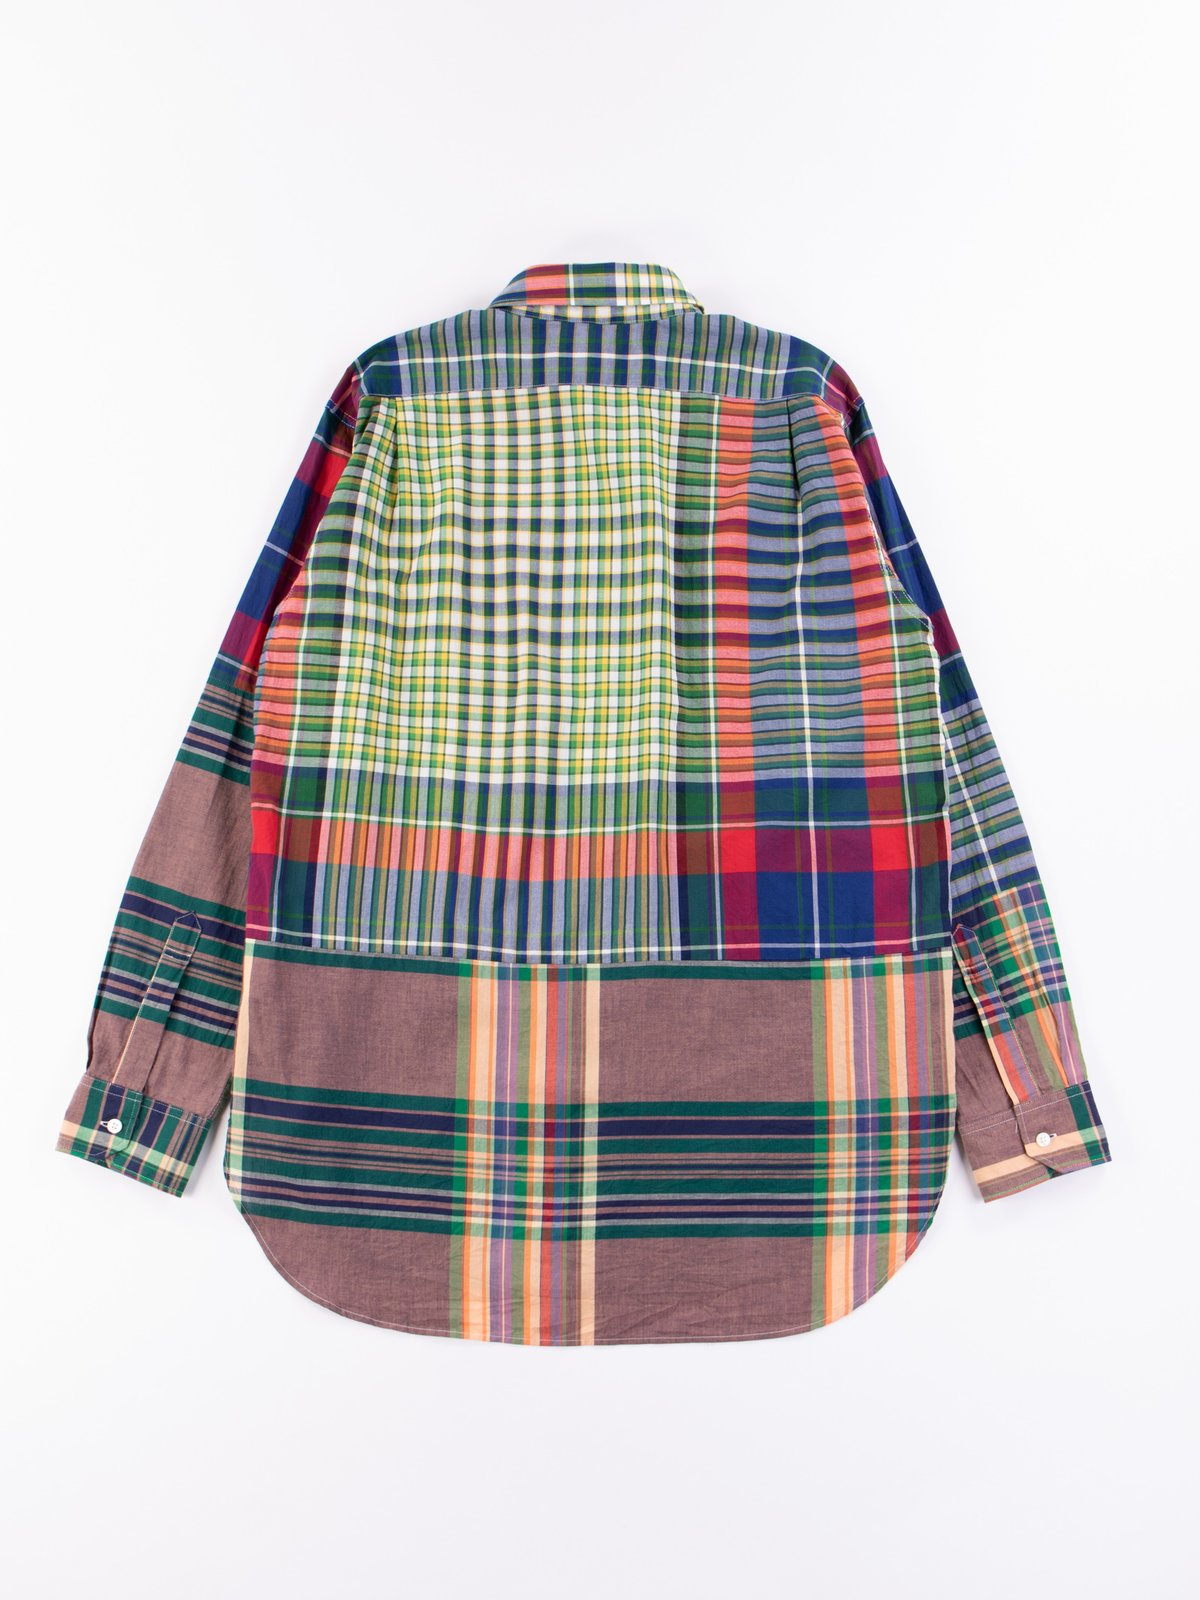 Red/Blue/Green Big Madras Plaid Spread Collar Shirt - Image 5